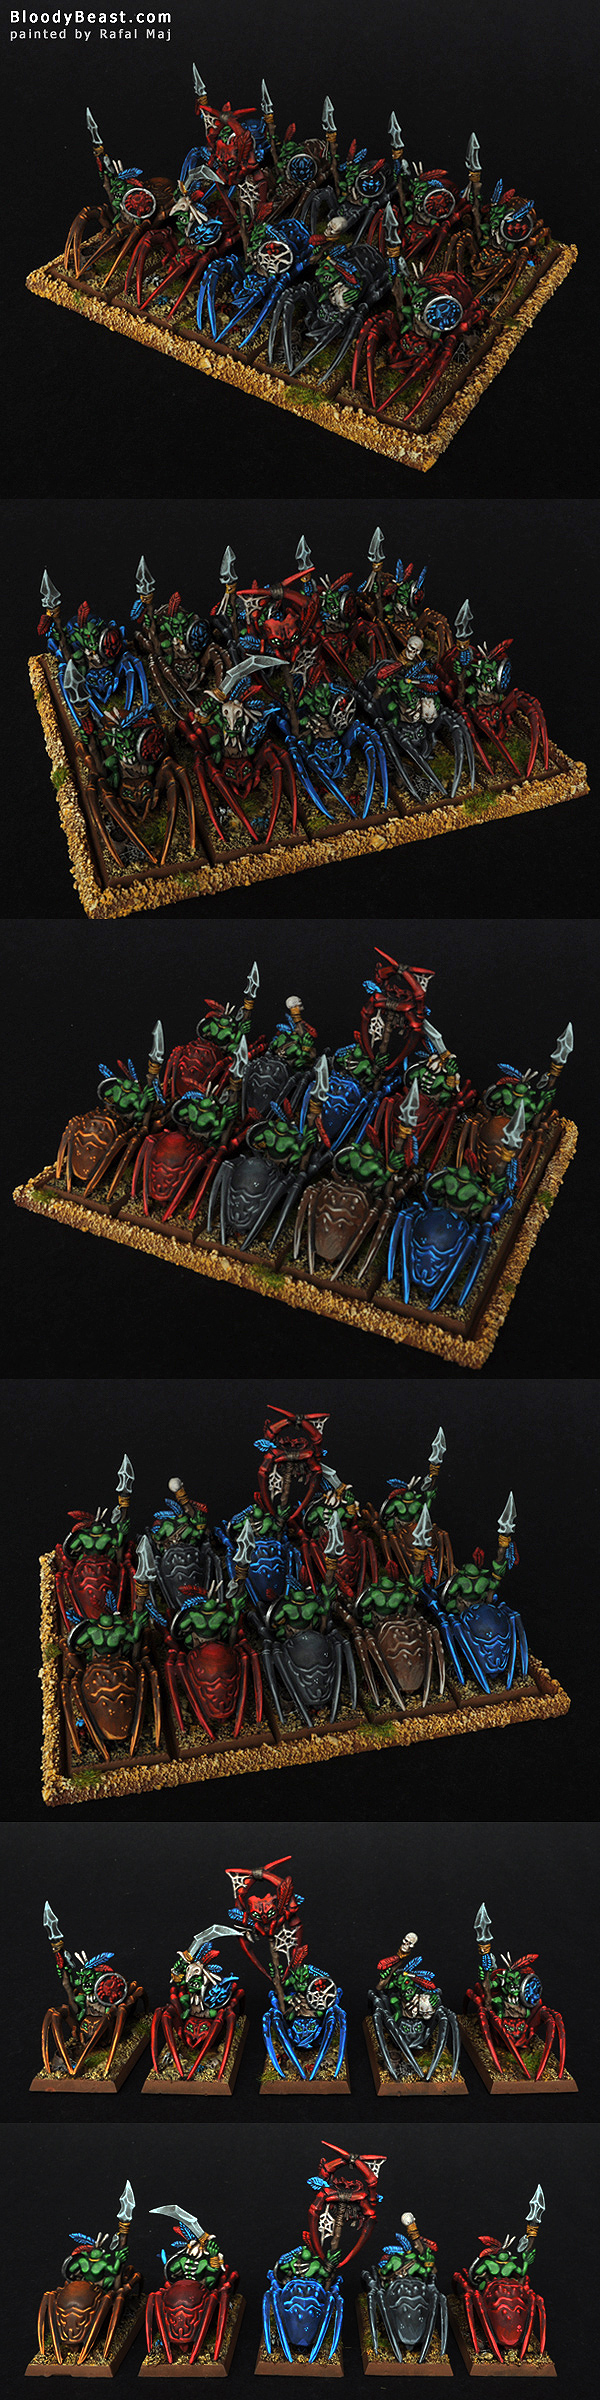 Forest Goblins Spider Riders painted by Rafal Maj (BloodyBeast.com)